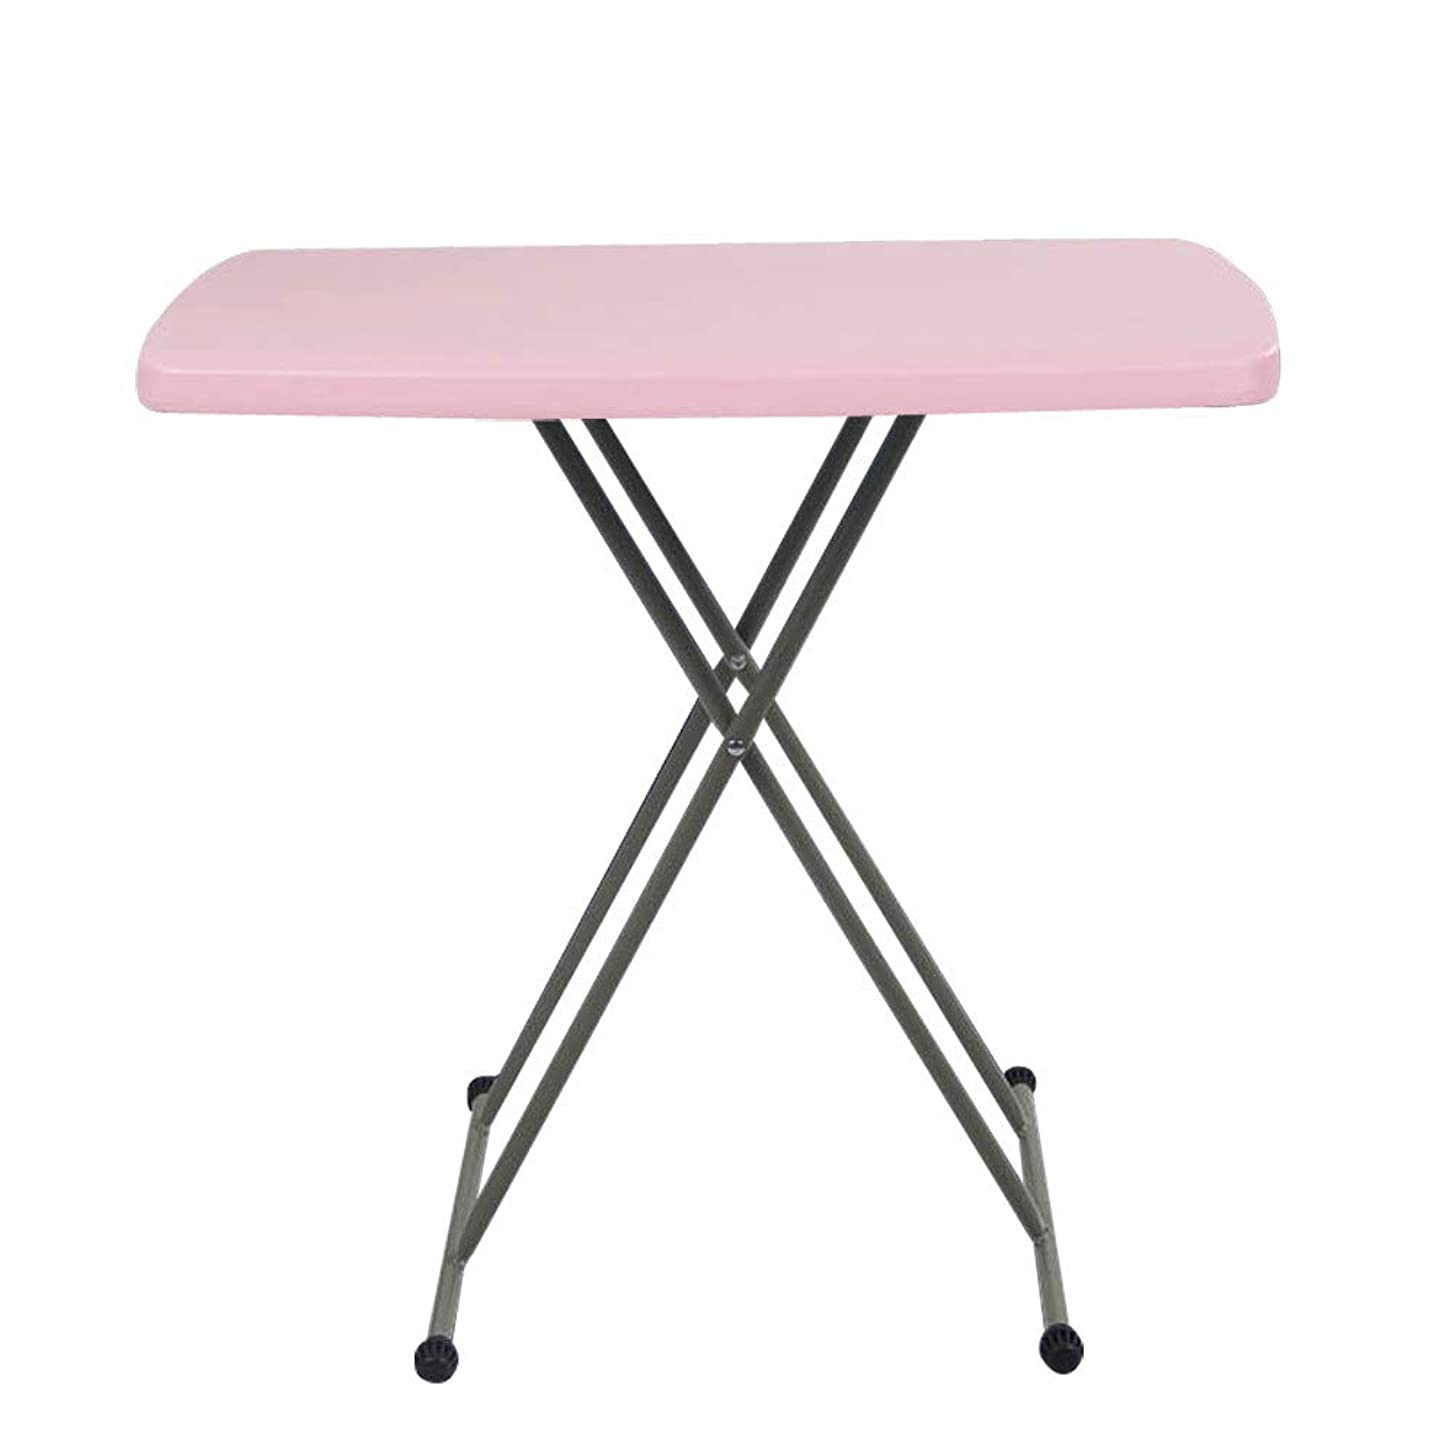 Clearance Folding Laptop Table | Inkach Adjustable Computer Desk Mouse Stand | Overbed Side Table Bed Tray Notebook Holder (Pink)